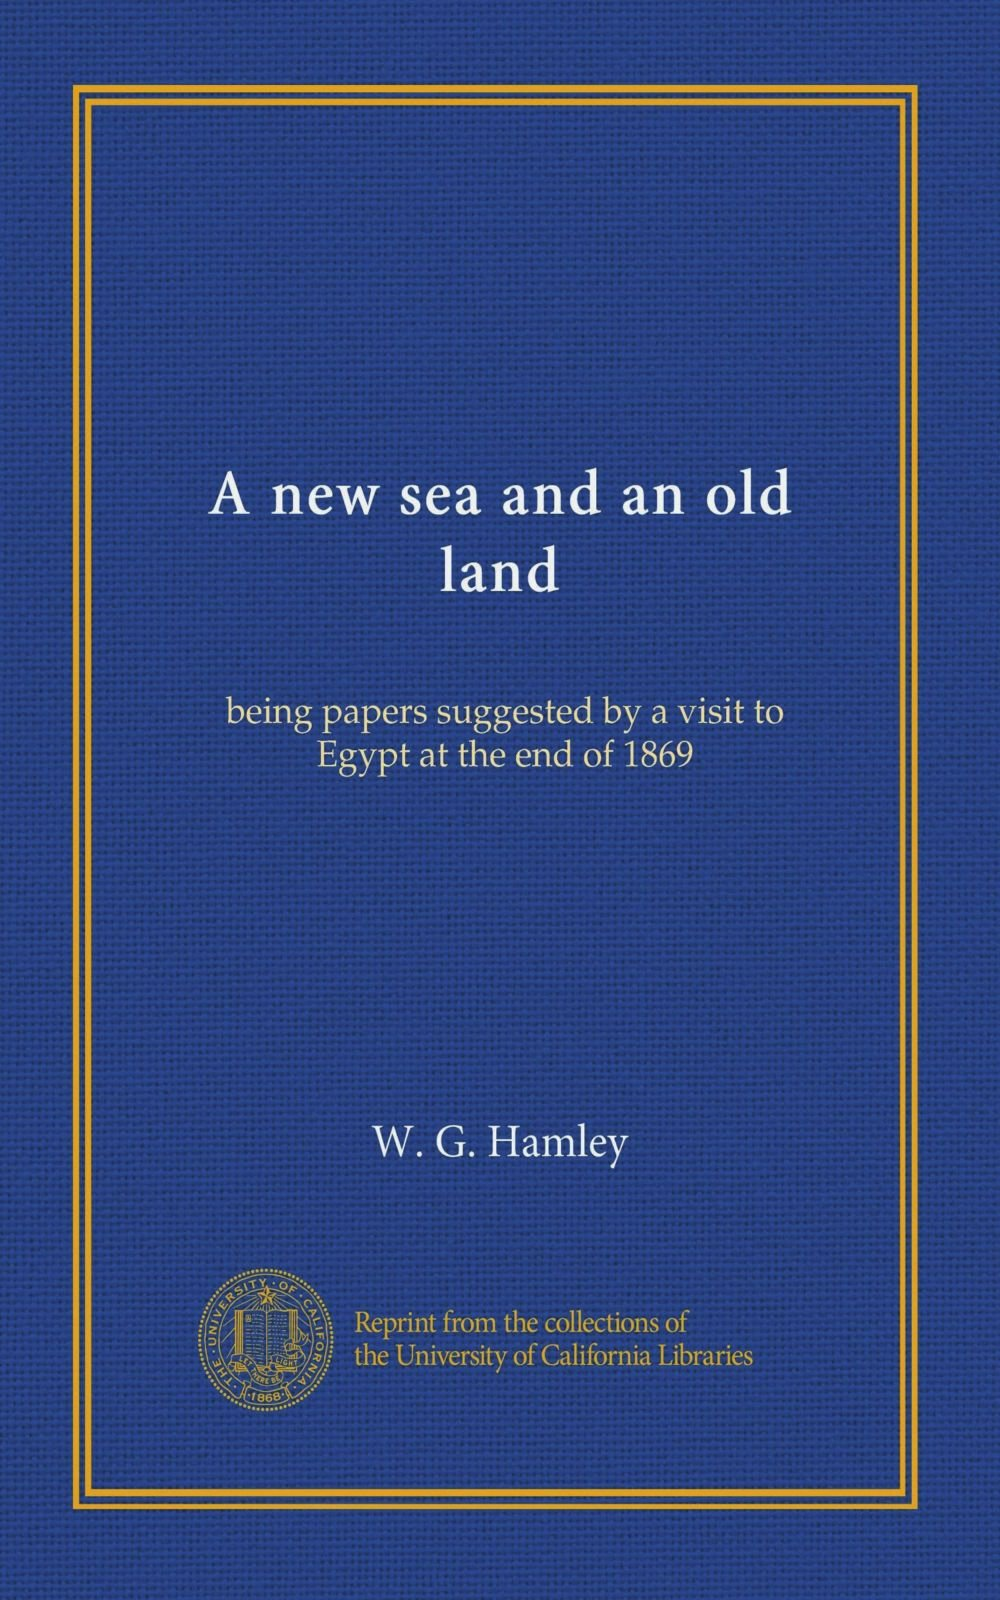 Download A new sea and an old land: being papers suggested by a visit to Egypt at the end of 1869 pdf